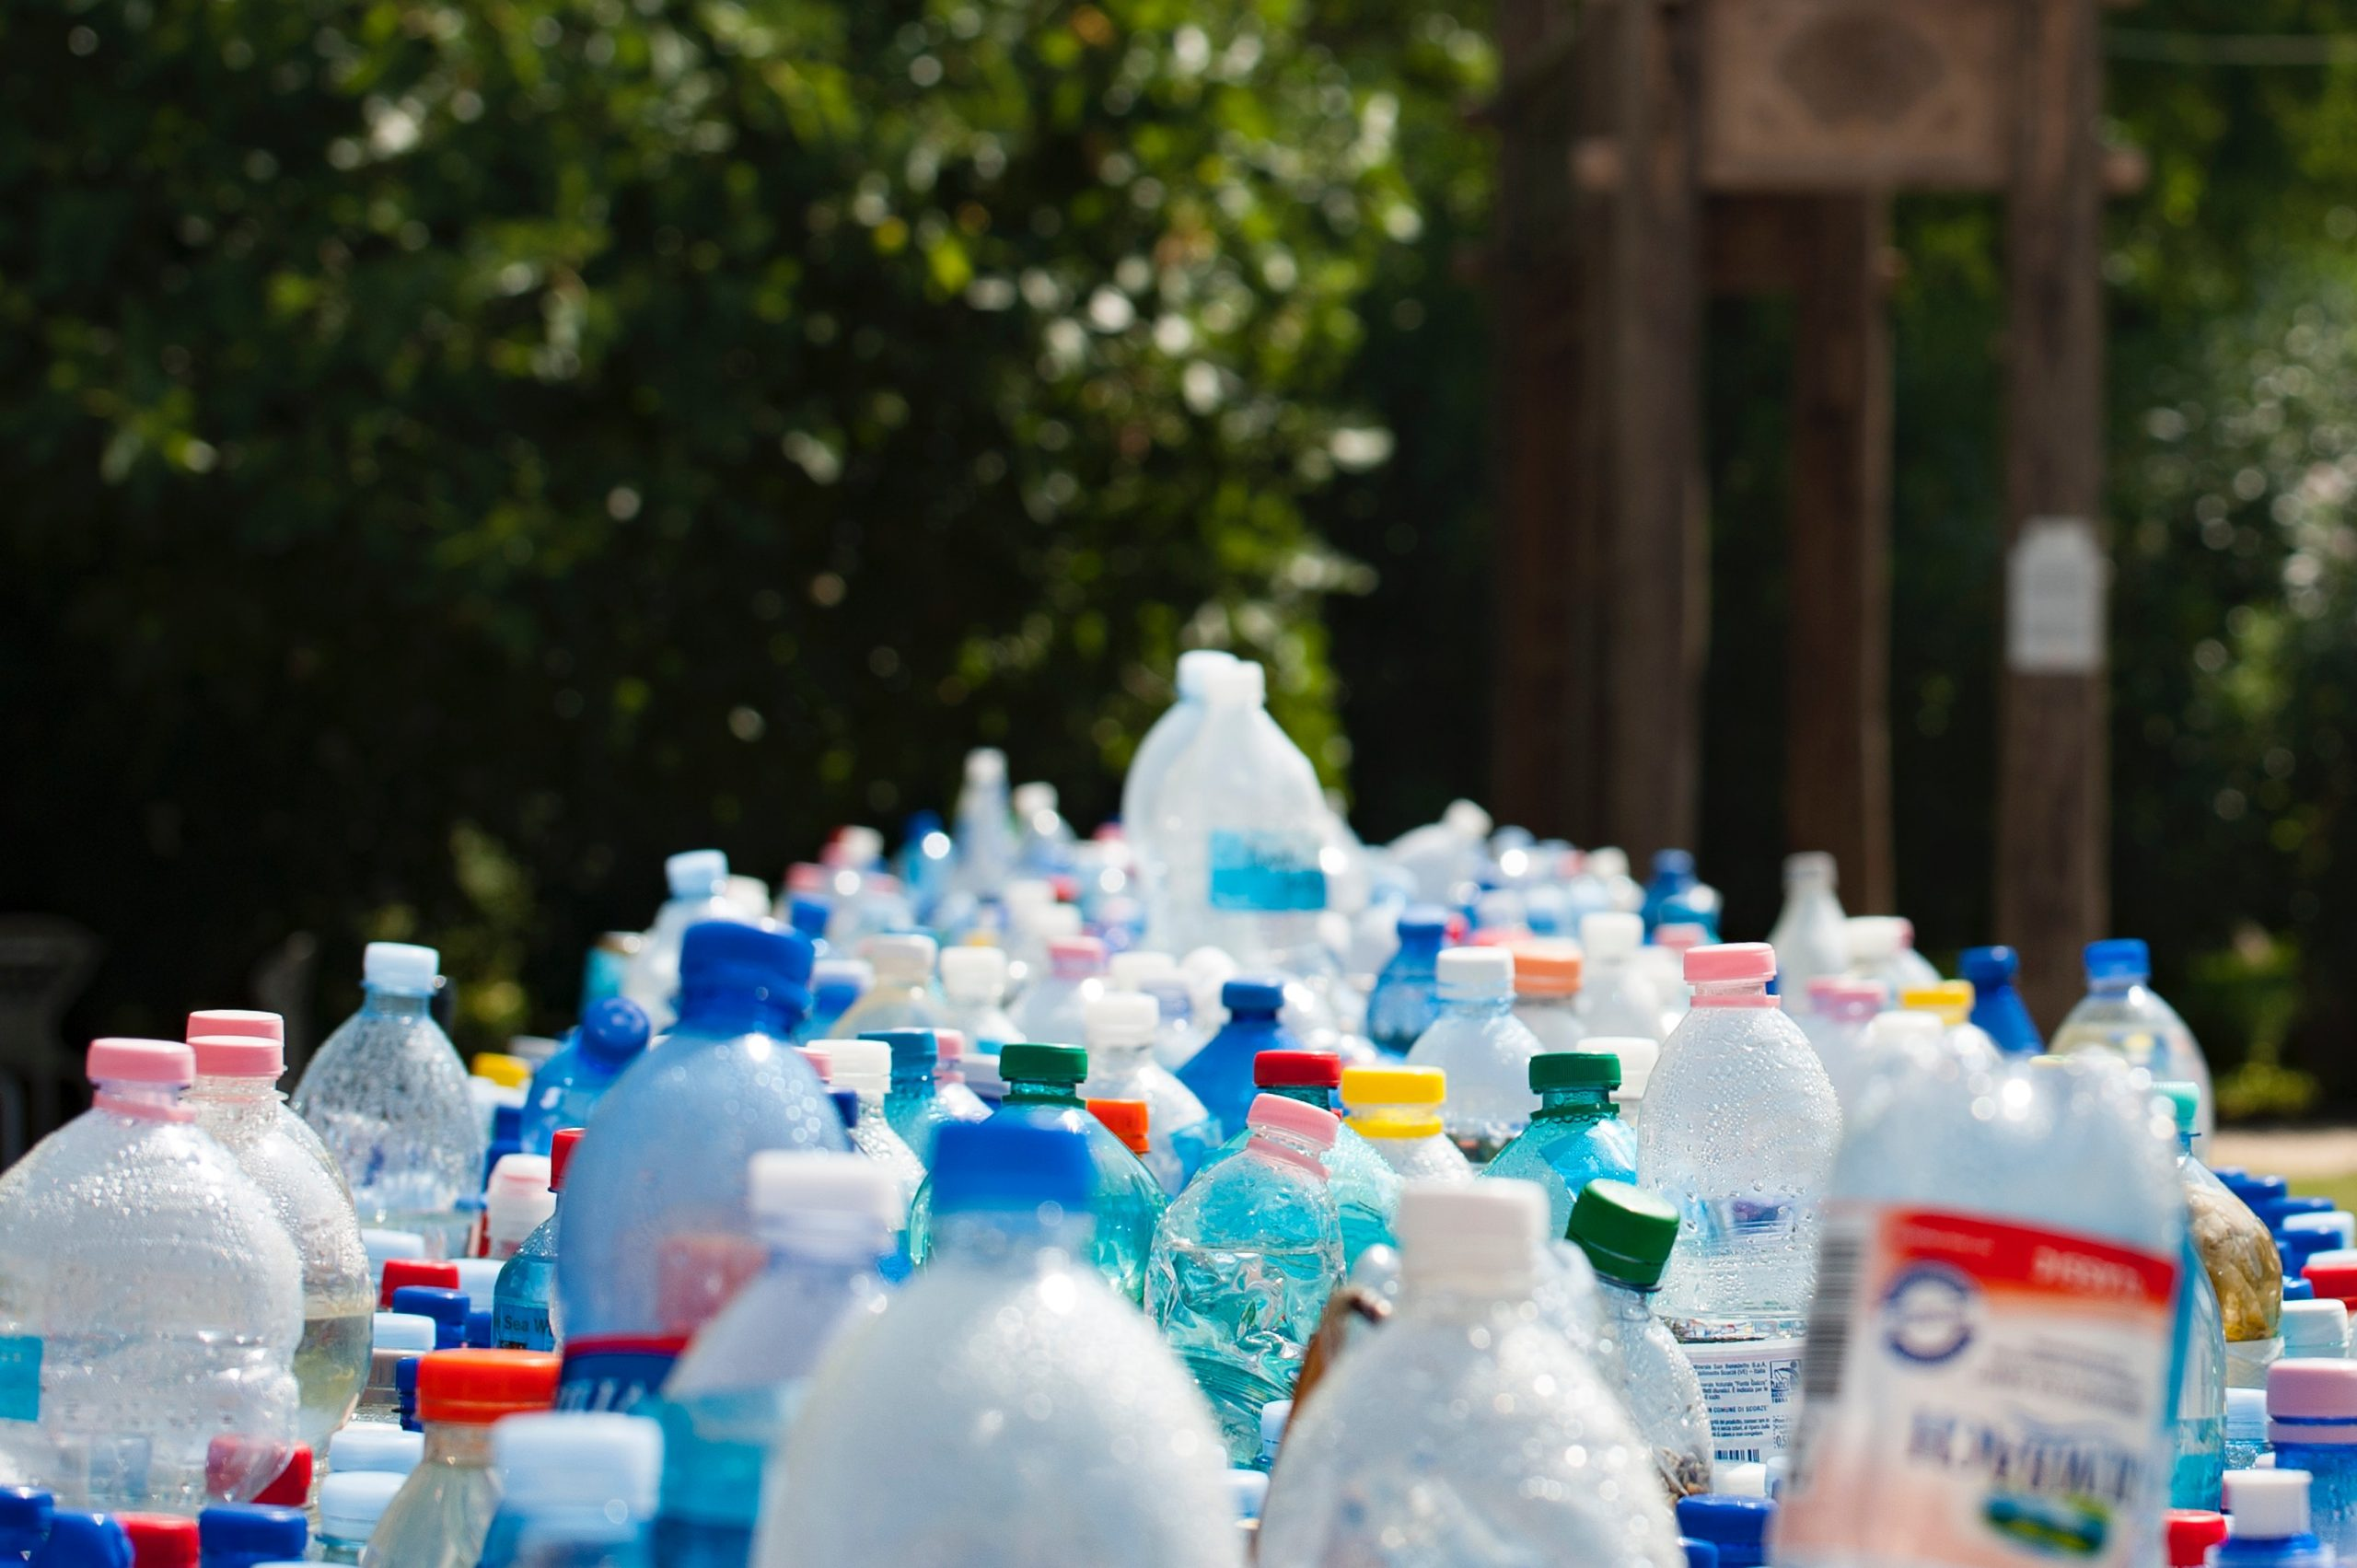 Funding for Innovative Projects to Tackle Plastic Pollution in the UK